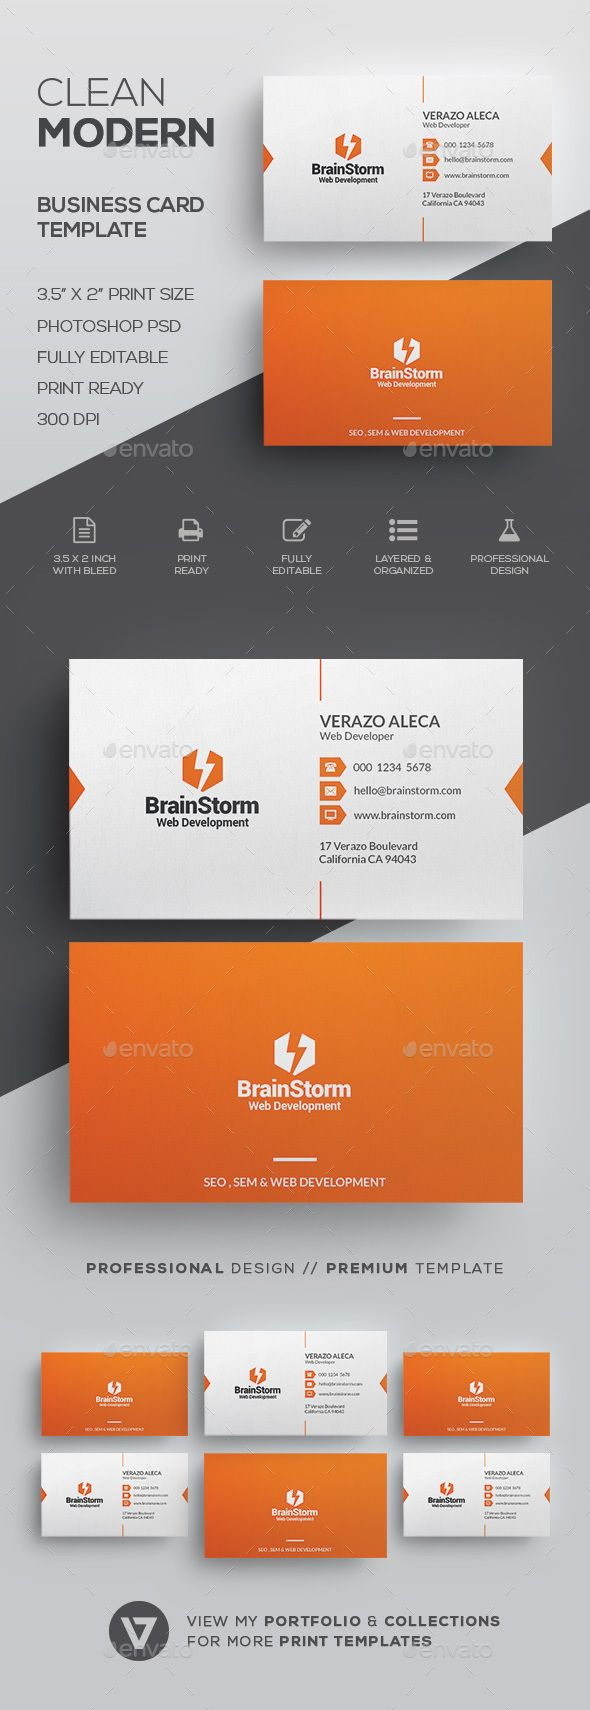 Clean Business Card Template - Corporate #Business #Cards Download here: graphic...